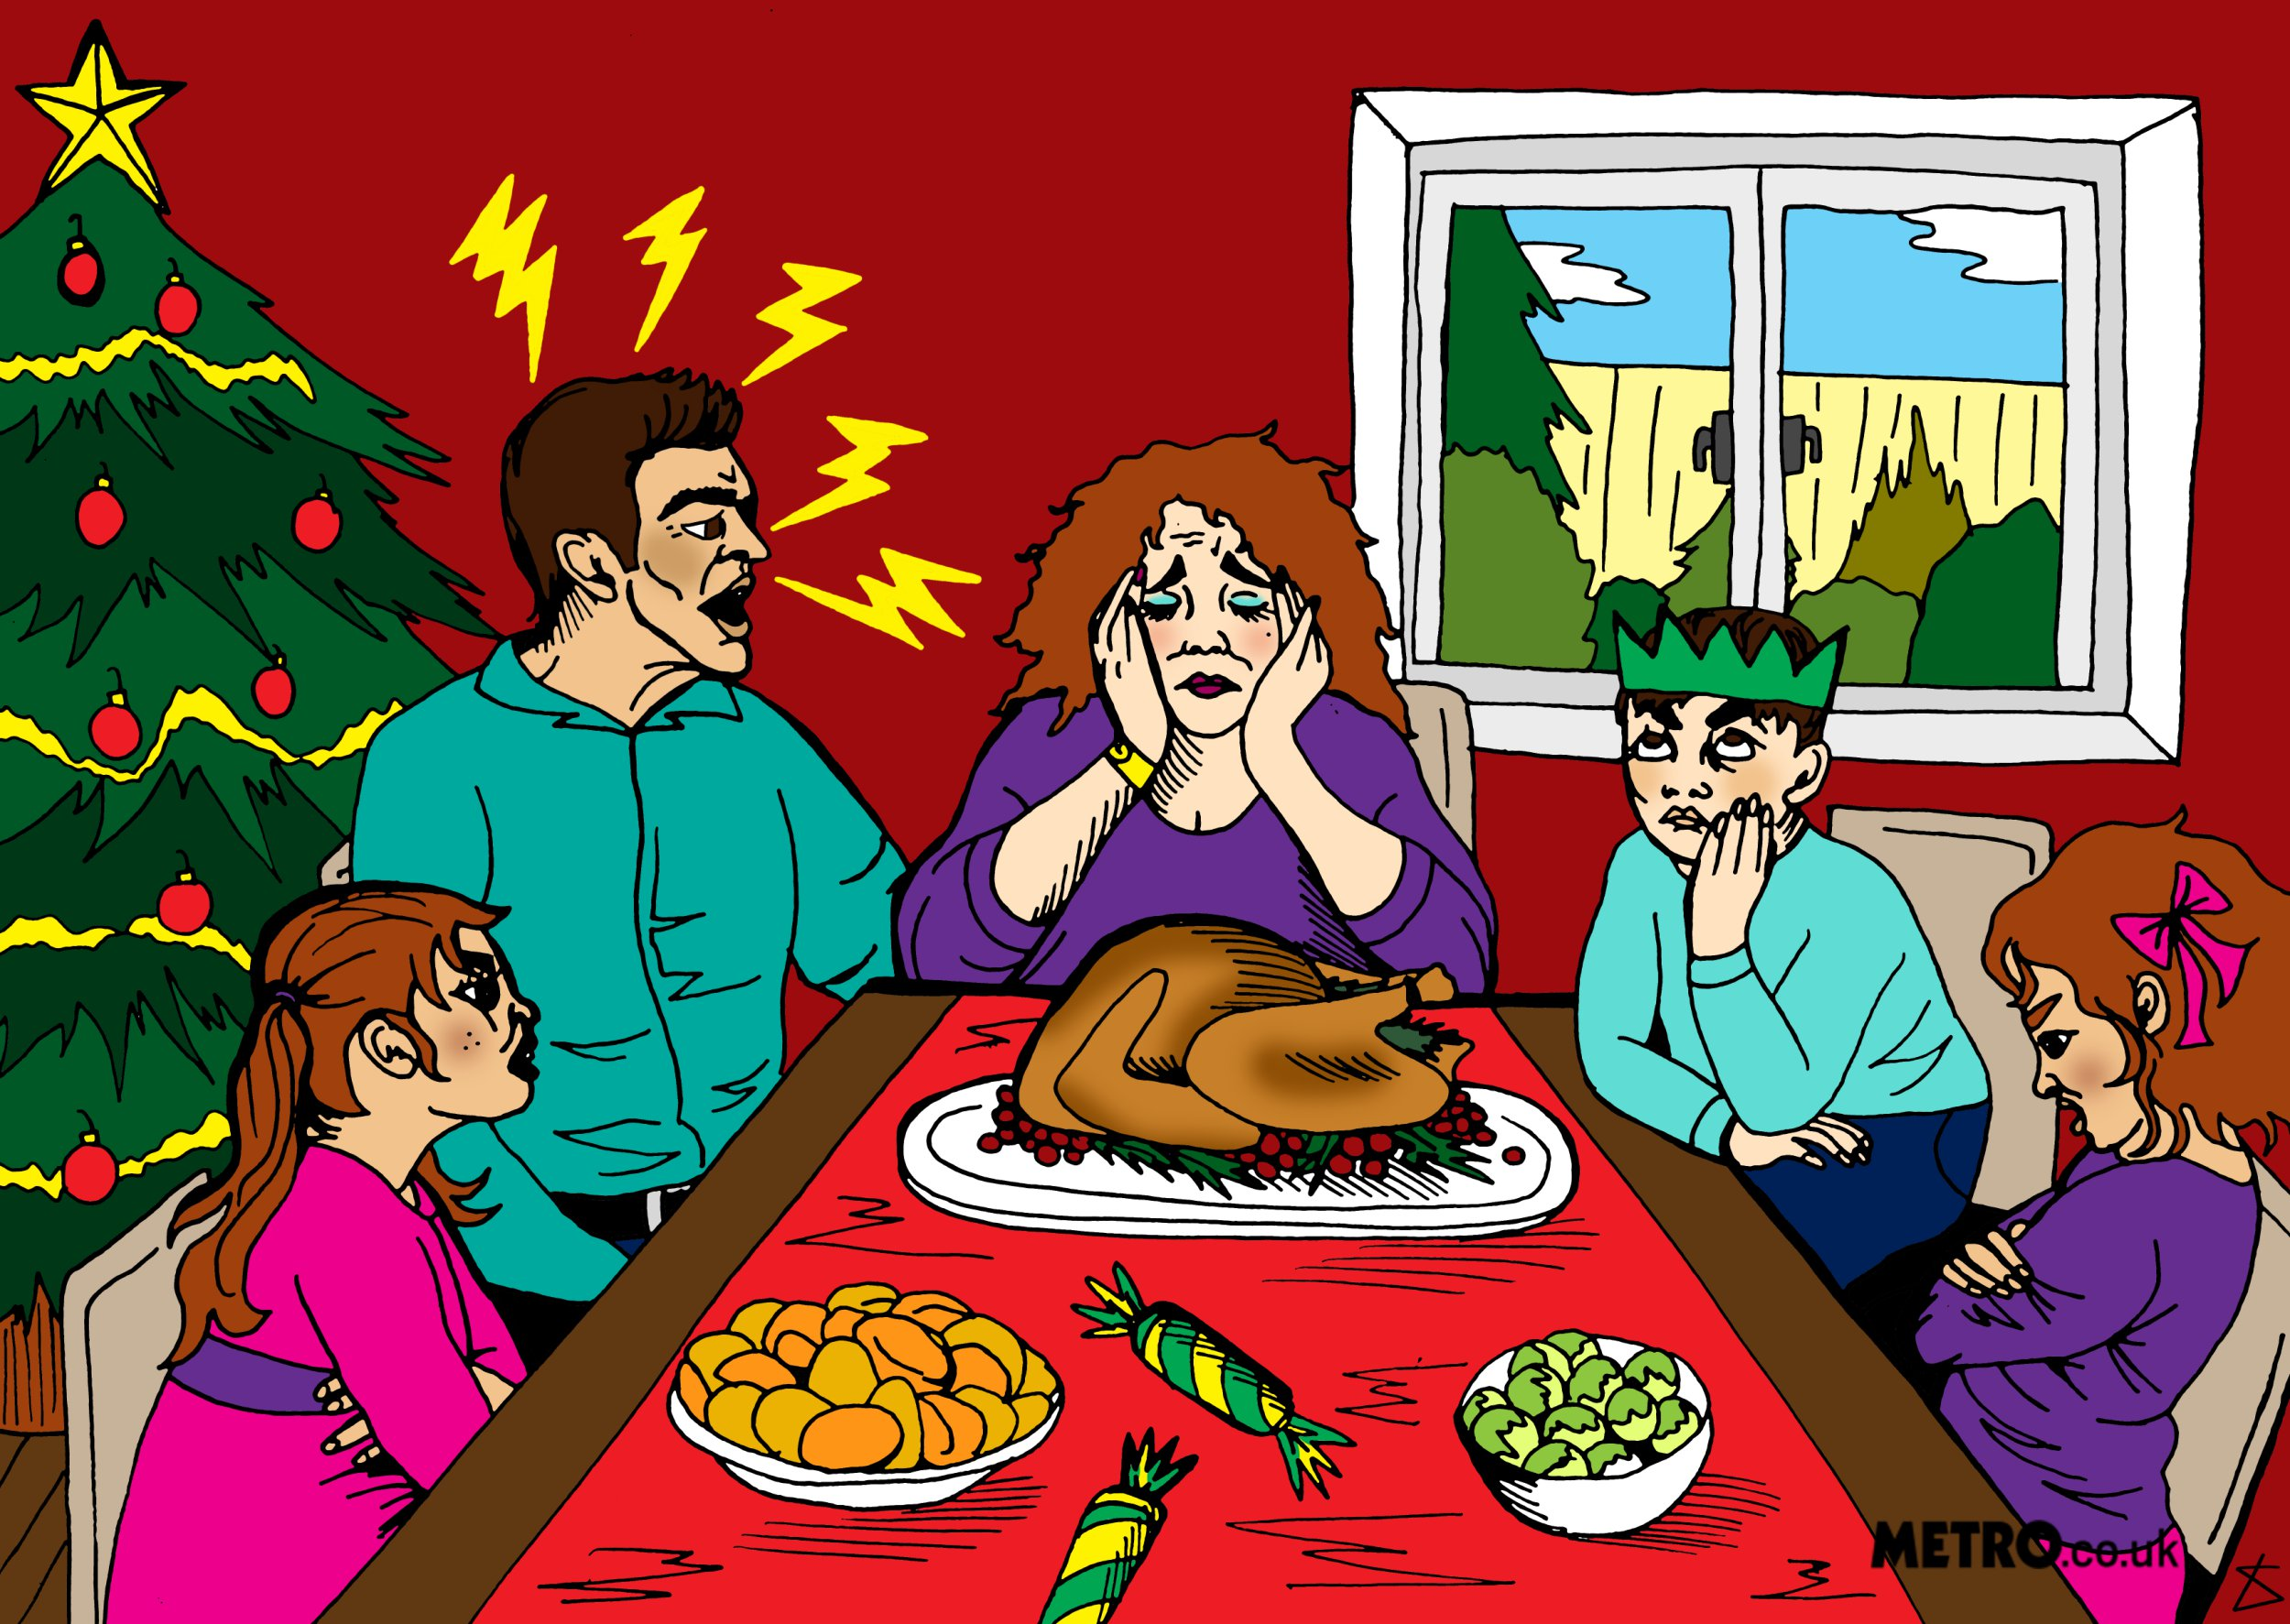 10 reasons I dread Christmas – from the cost to the family feuds